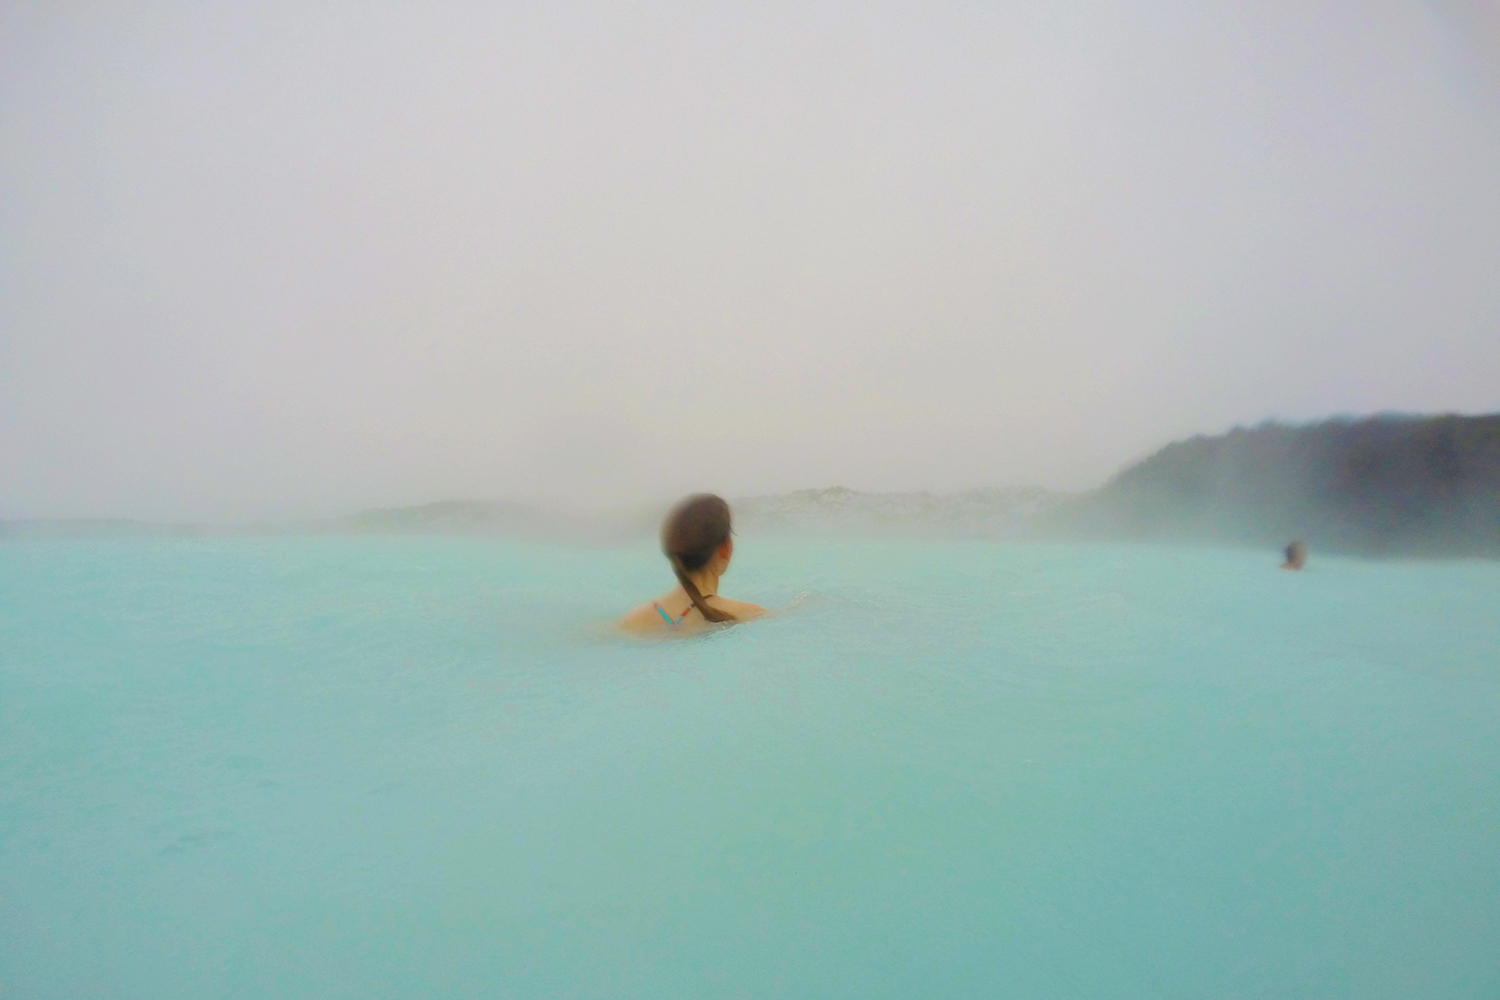 Is there a snow storm raging during your visit to Iceland? Don't worry - you can still visit the Blue Lagoon, even in below freezing outdoor temperatures!